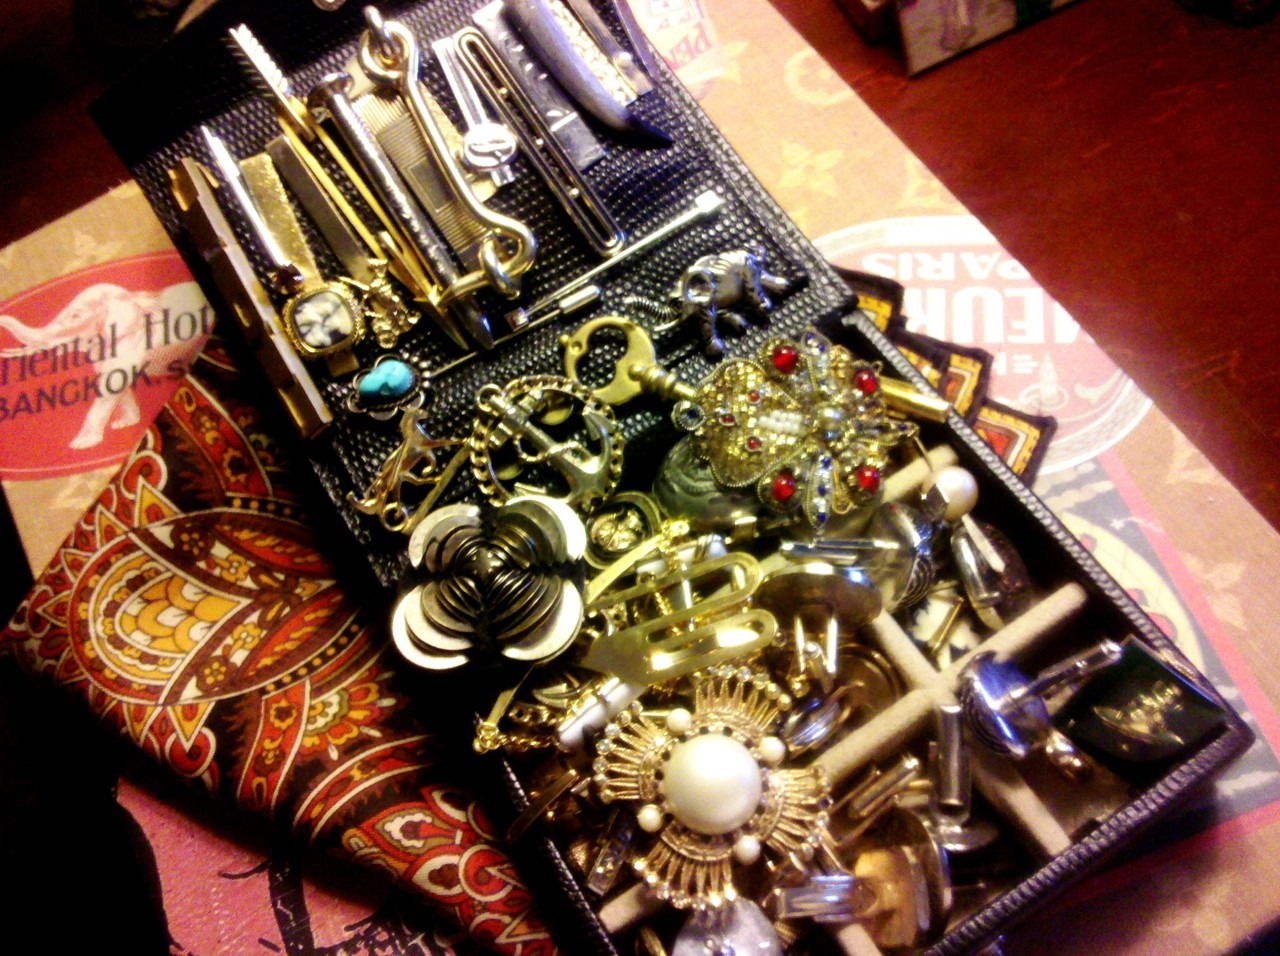 todaystie :     everypiece has a story,the haberdasheryof my life.   |>0<|     i love this!